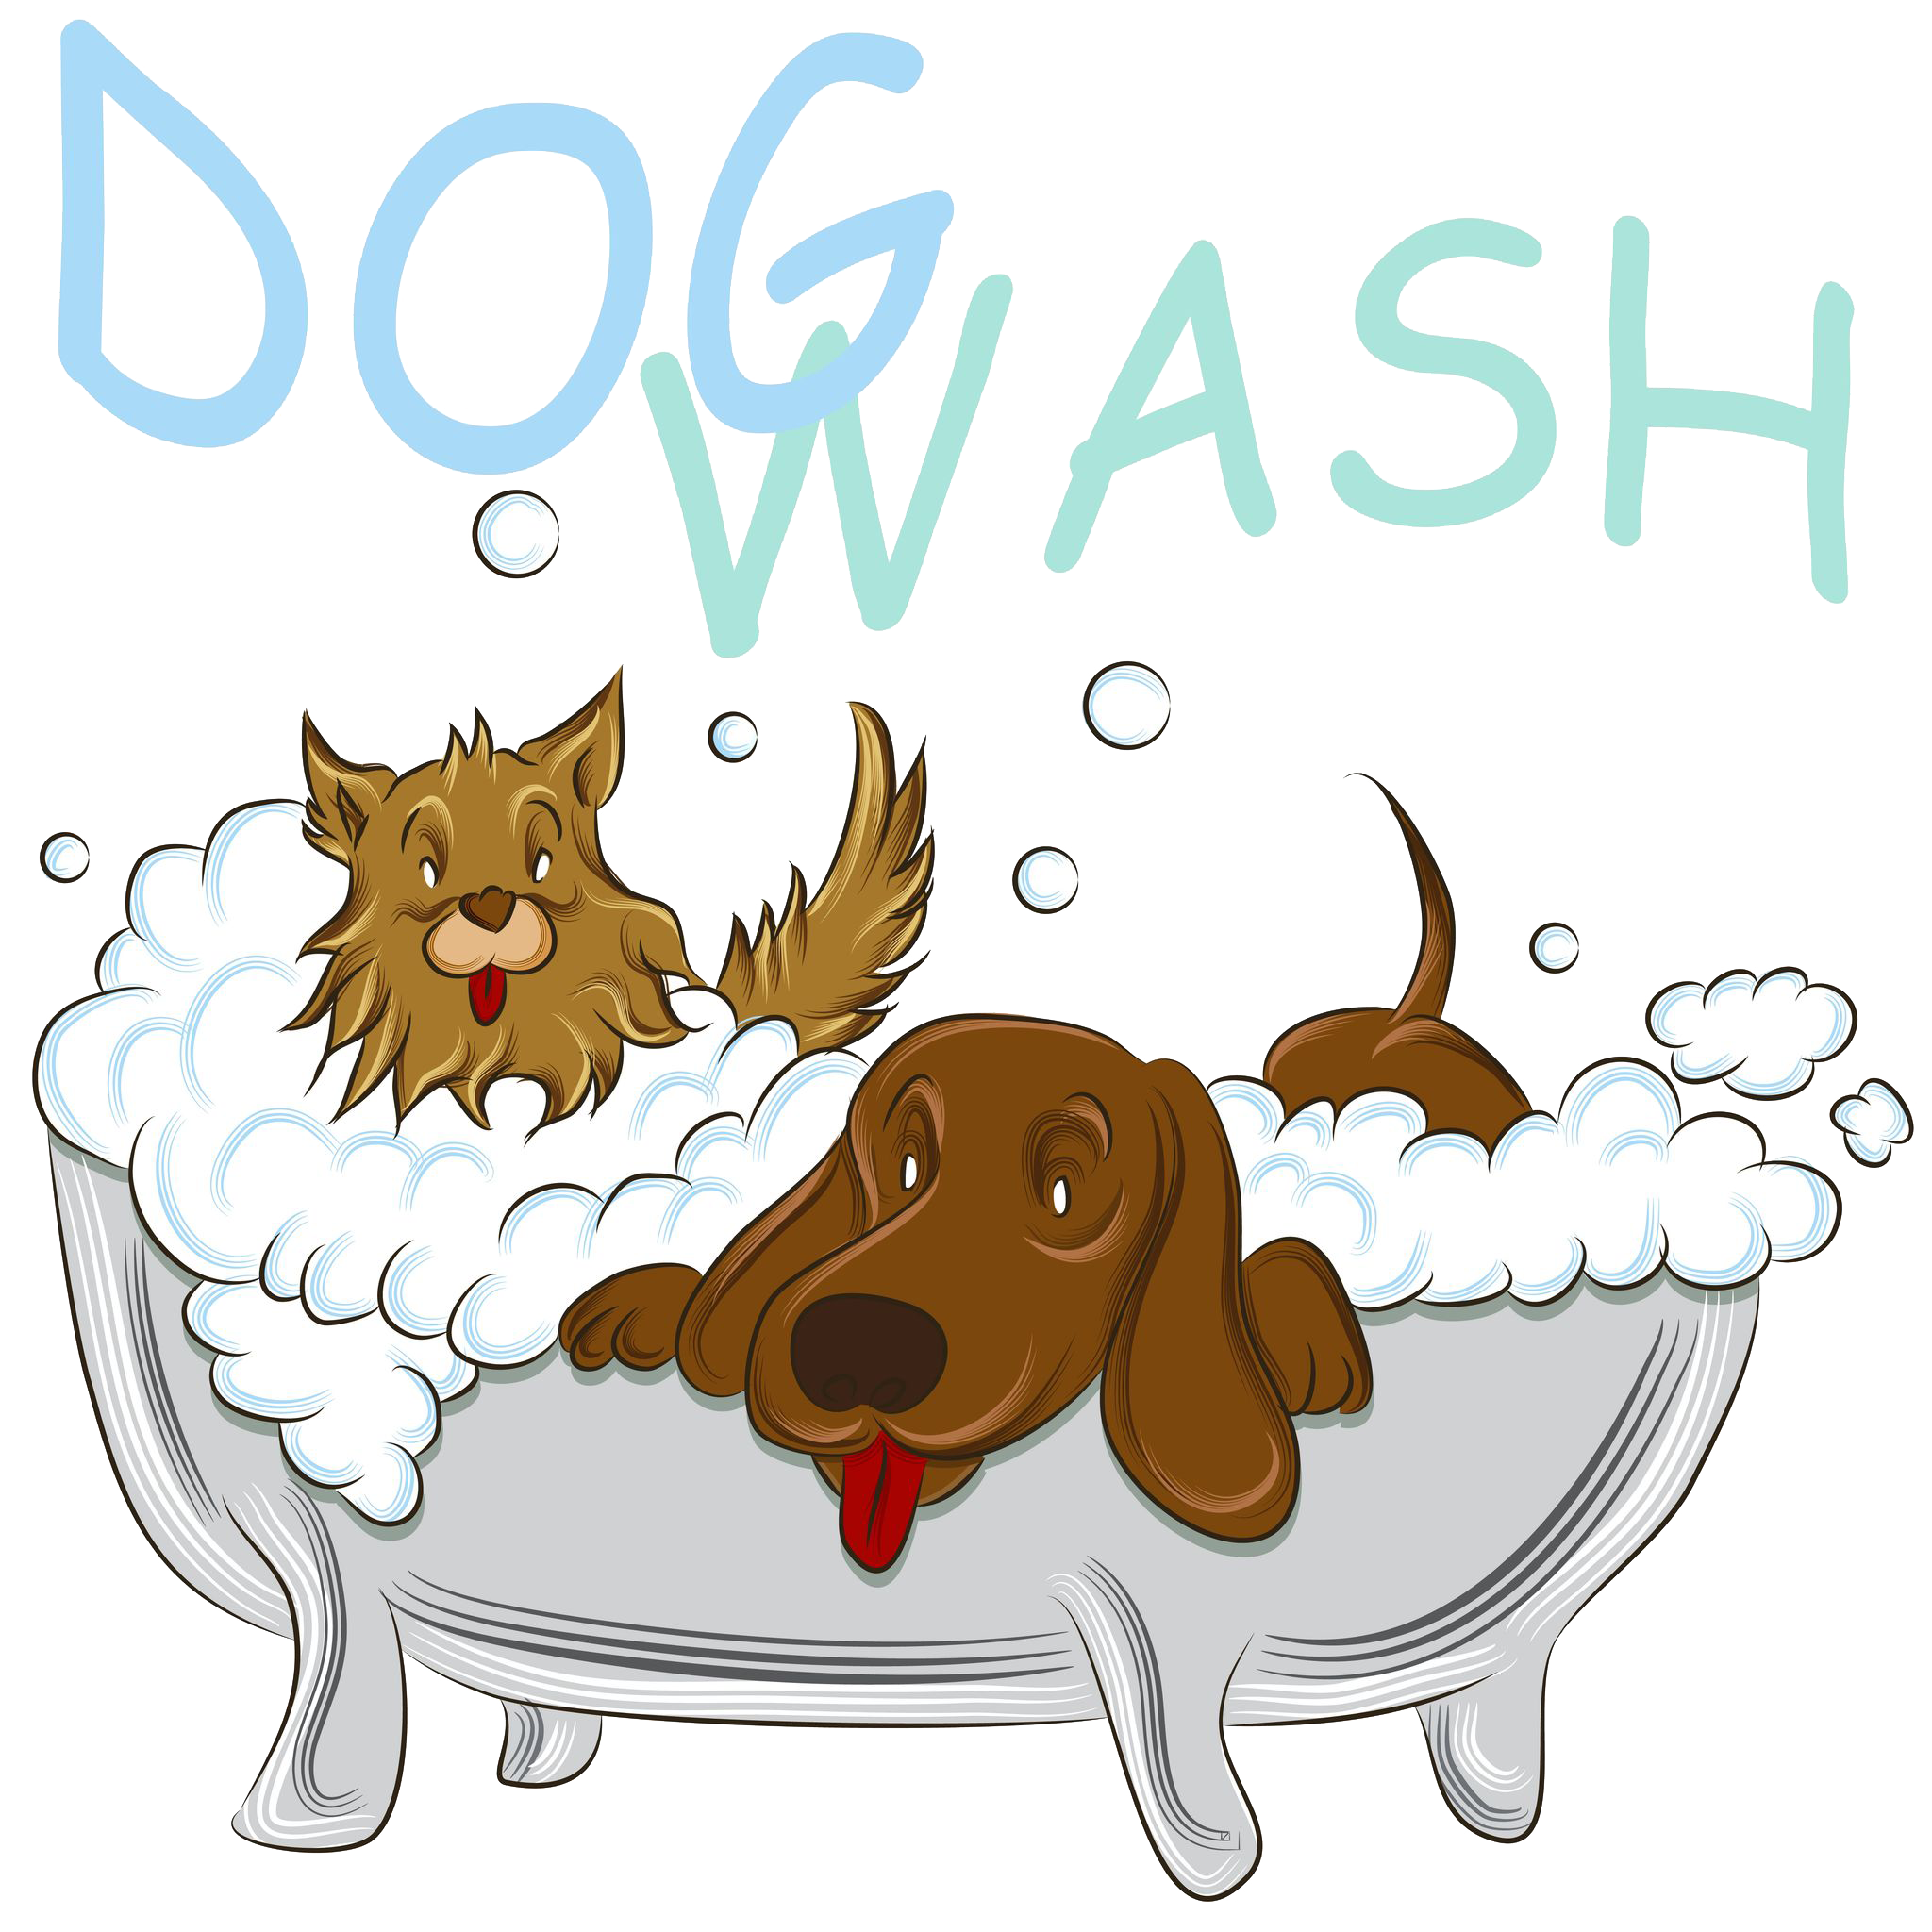 Dog in tub clipart. Become a trep i